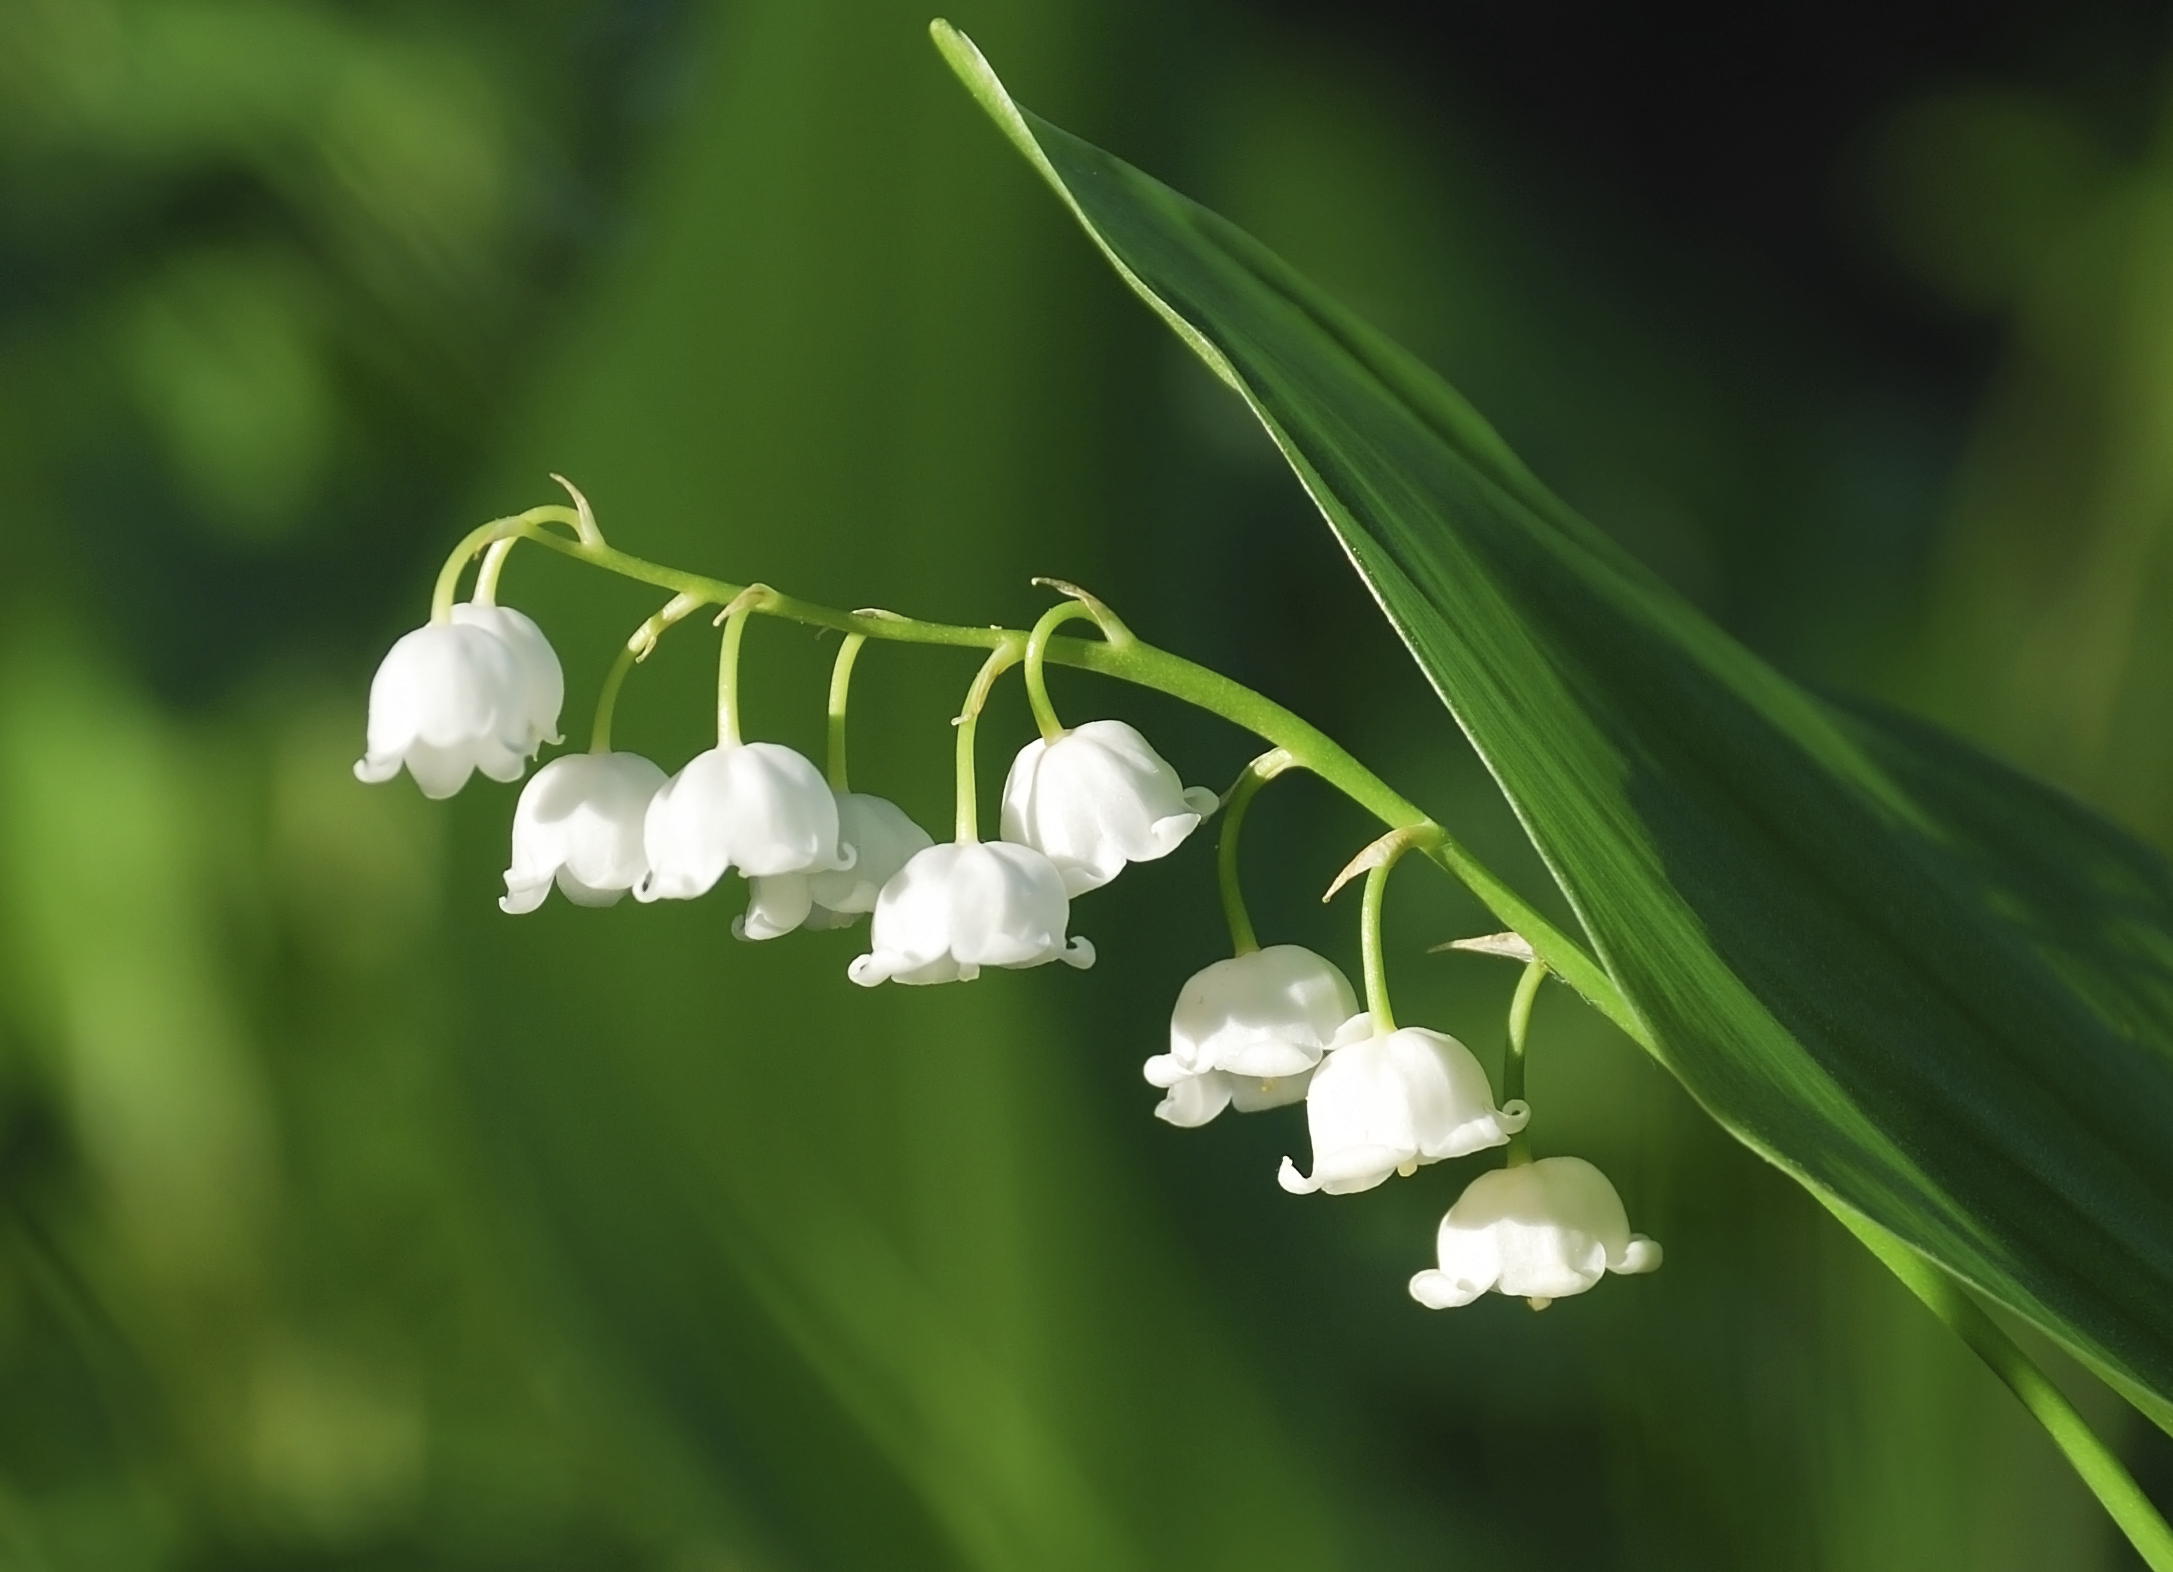 Lily Of The Valley Branch  636.7 Kb